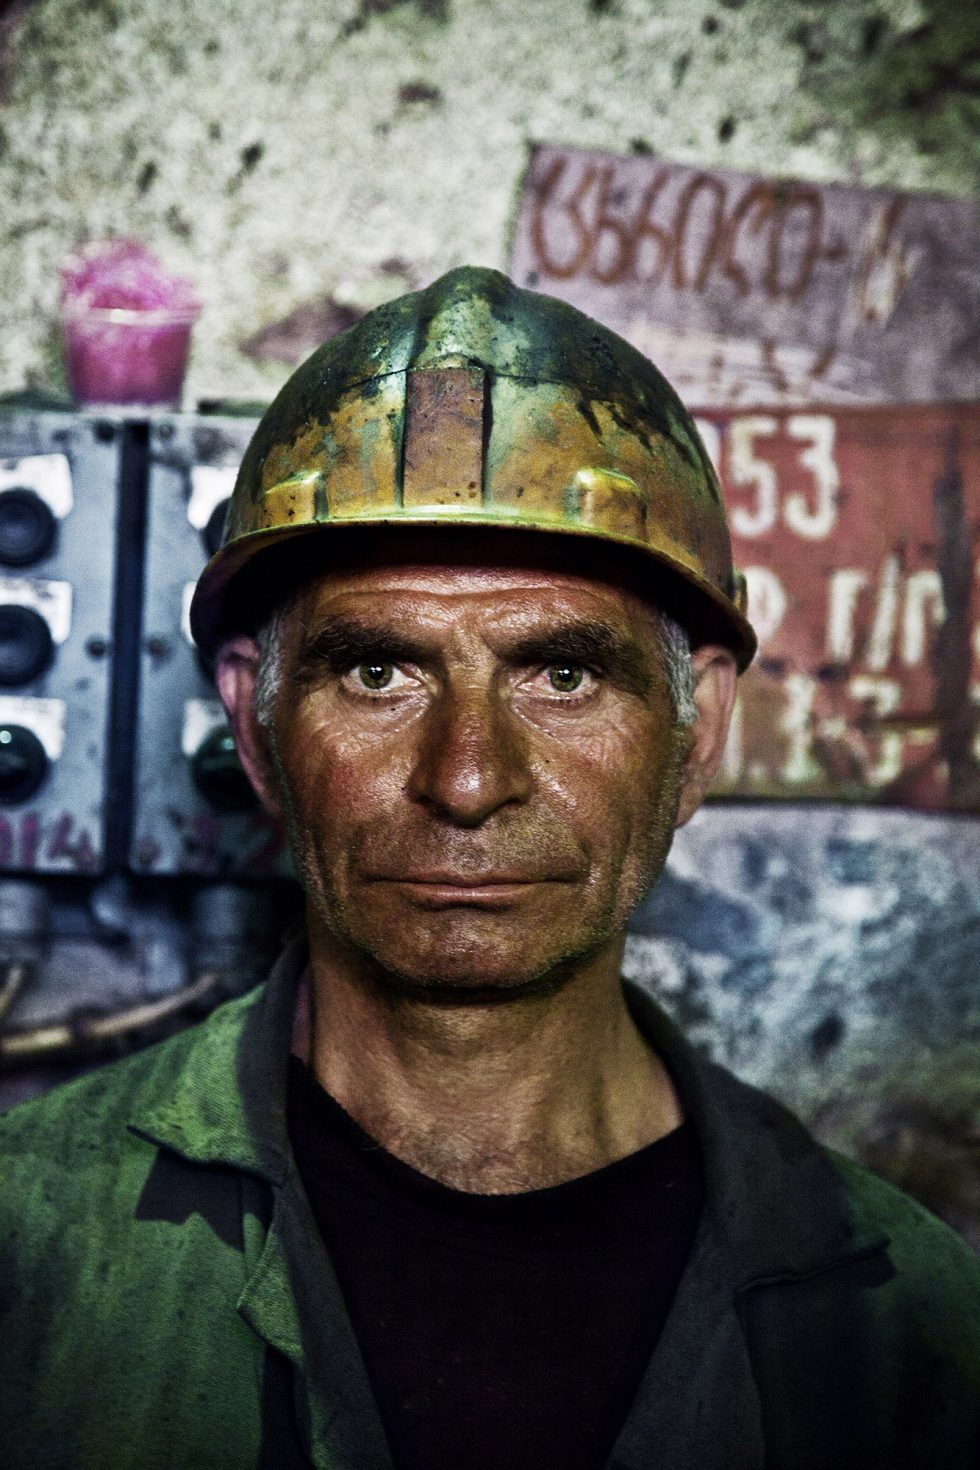 GEORGIA . Mineworker Zura works in a Mine factory in Chiatura 8 hours a day for 18 years. His monthly salary is $200.